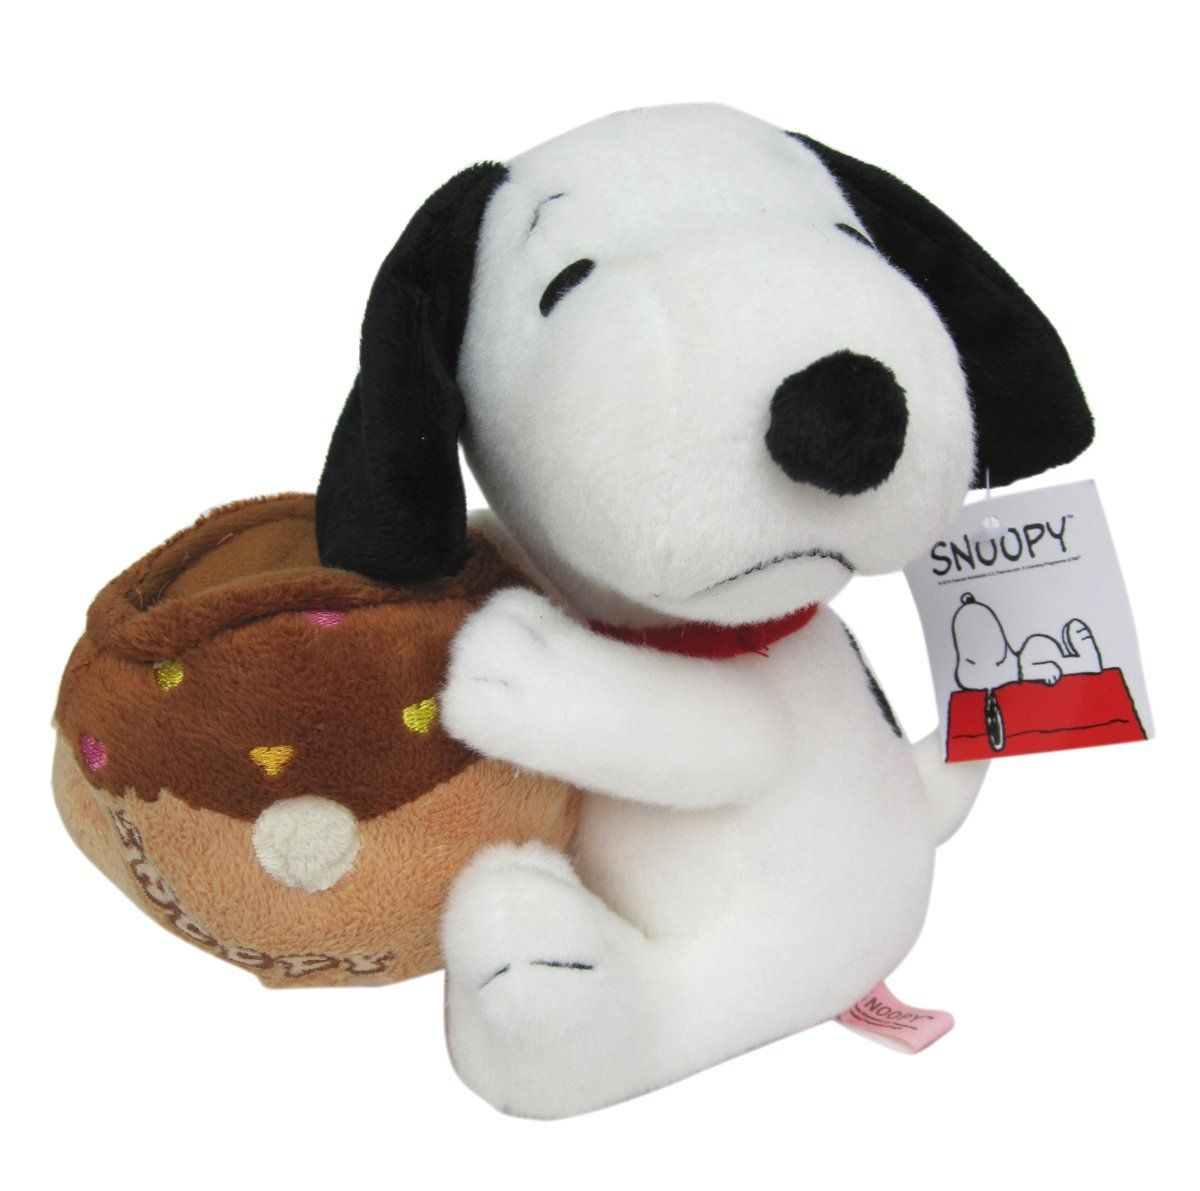 6in Snoopy Plush Gift Card Holder Brown Peanuts Stuffed Animal